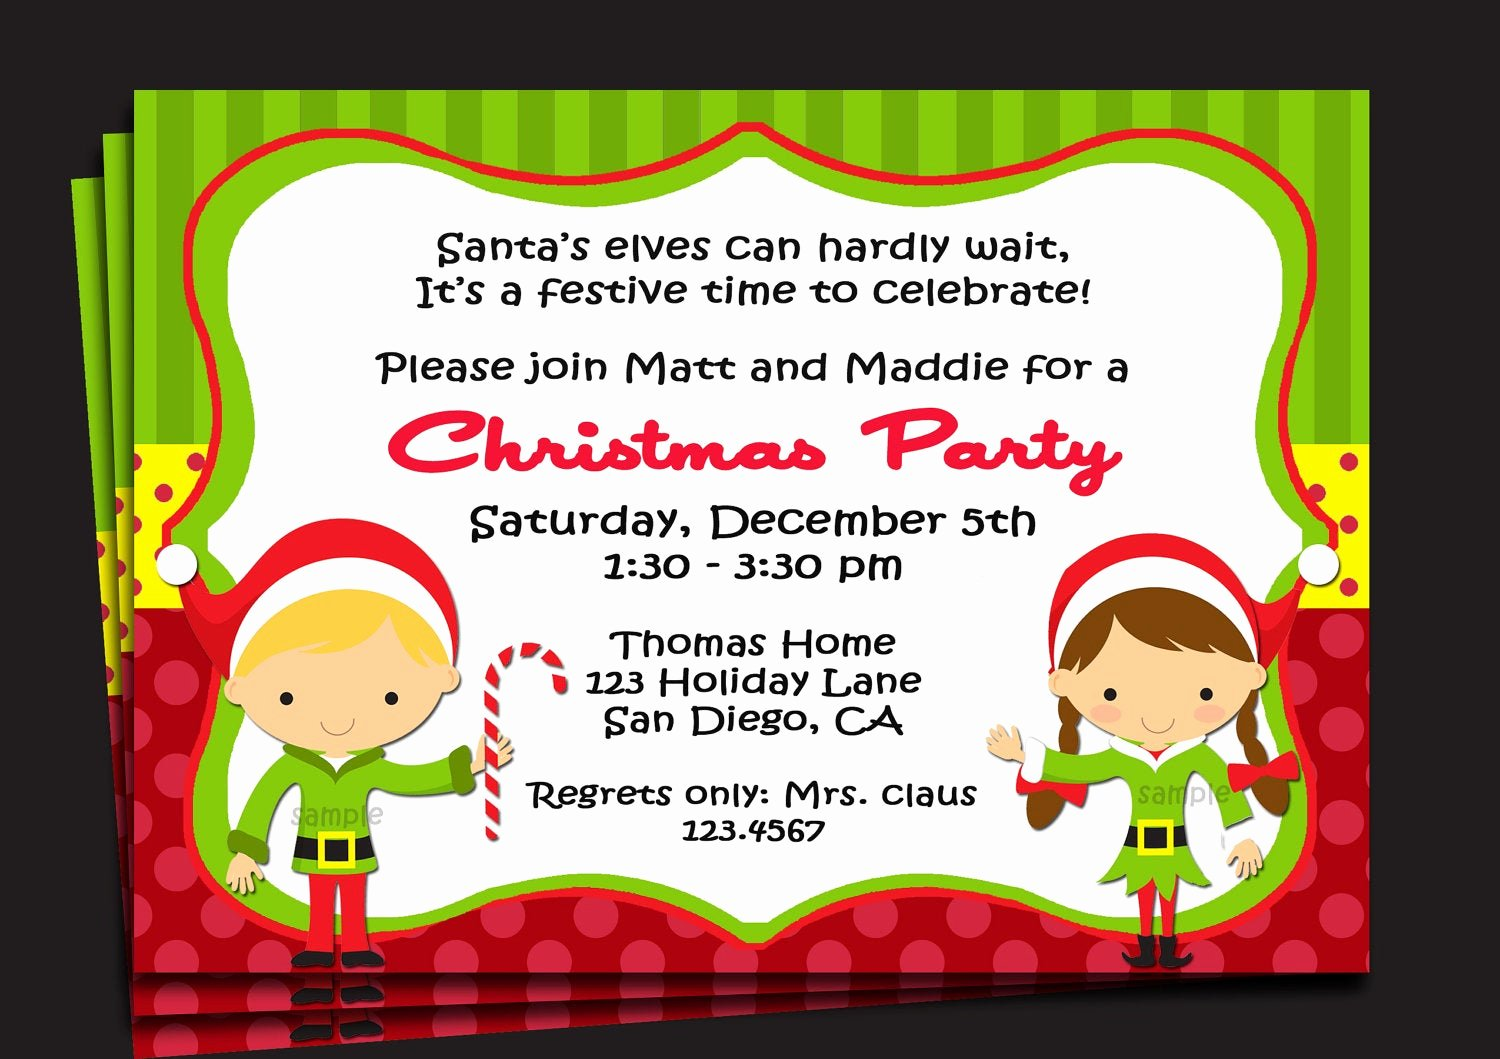 Free Christmas Party Invitations Template Inspirational Christmas Party Invitation Printable or Printed with Free